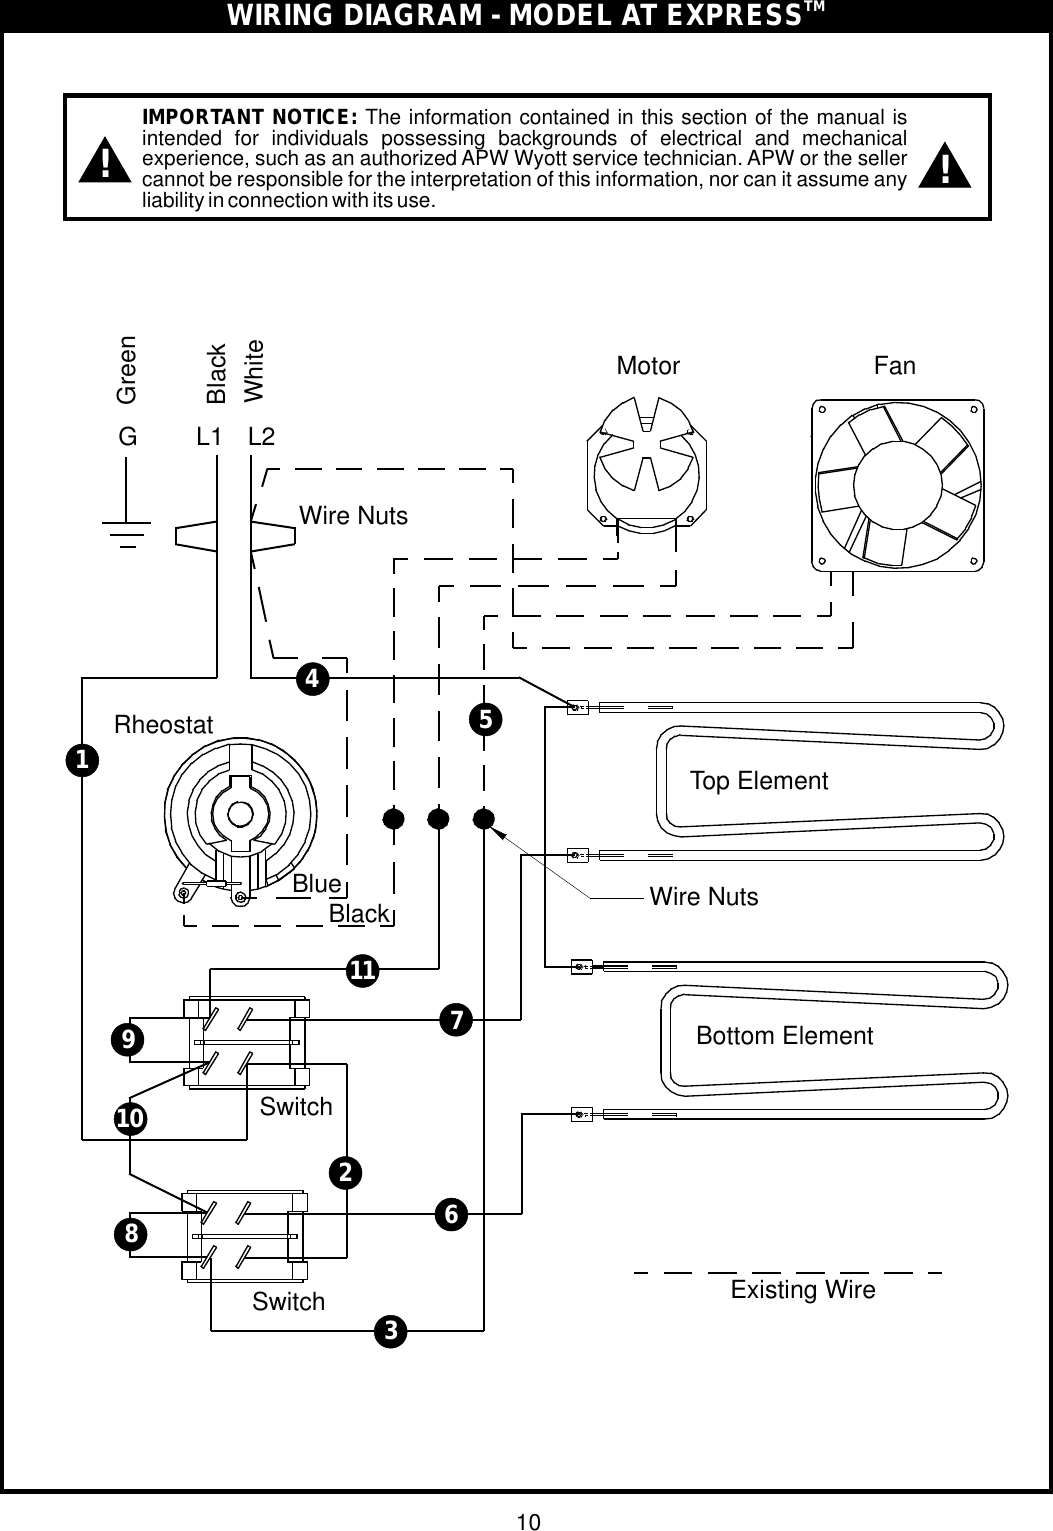 Apw Wyott Wiring Diagrams Trusted Wiring Diagram - Apw wyott steam table